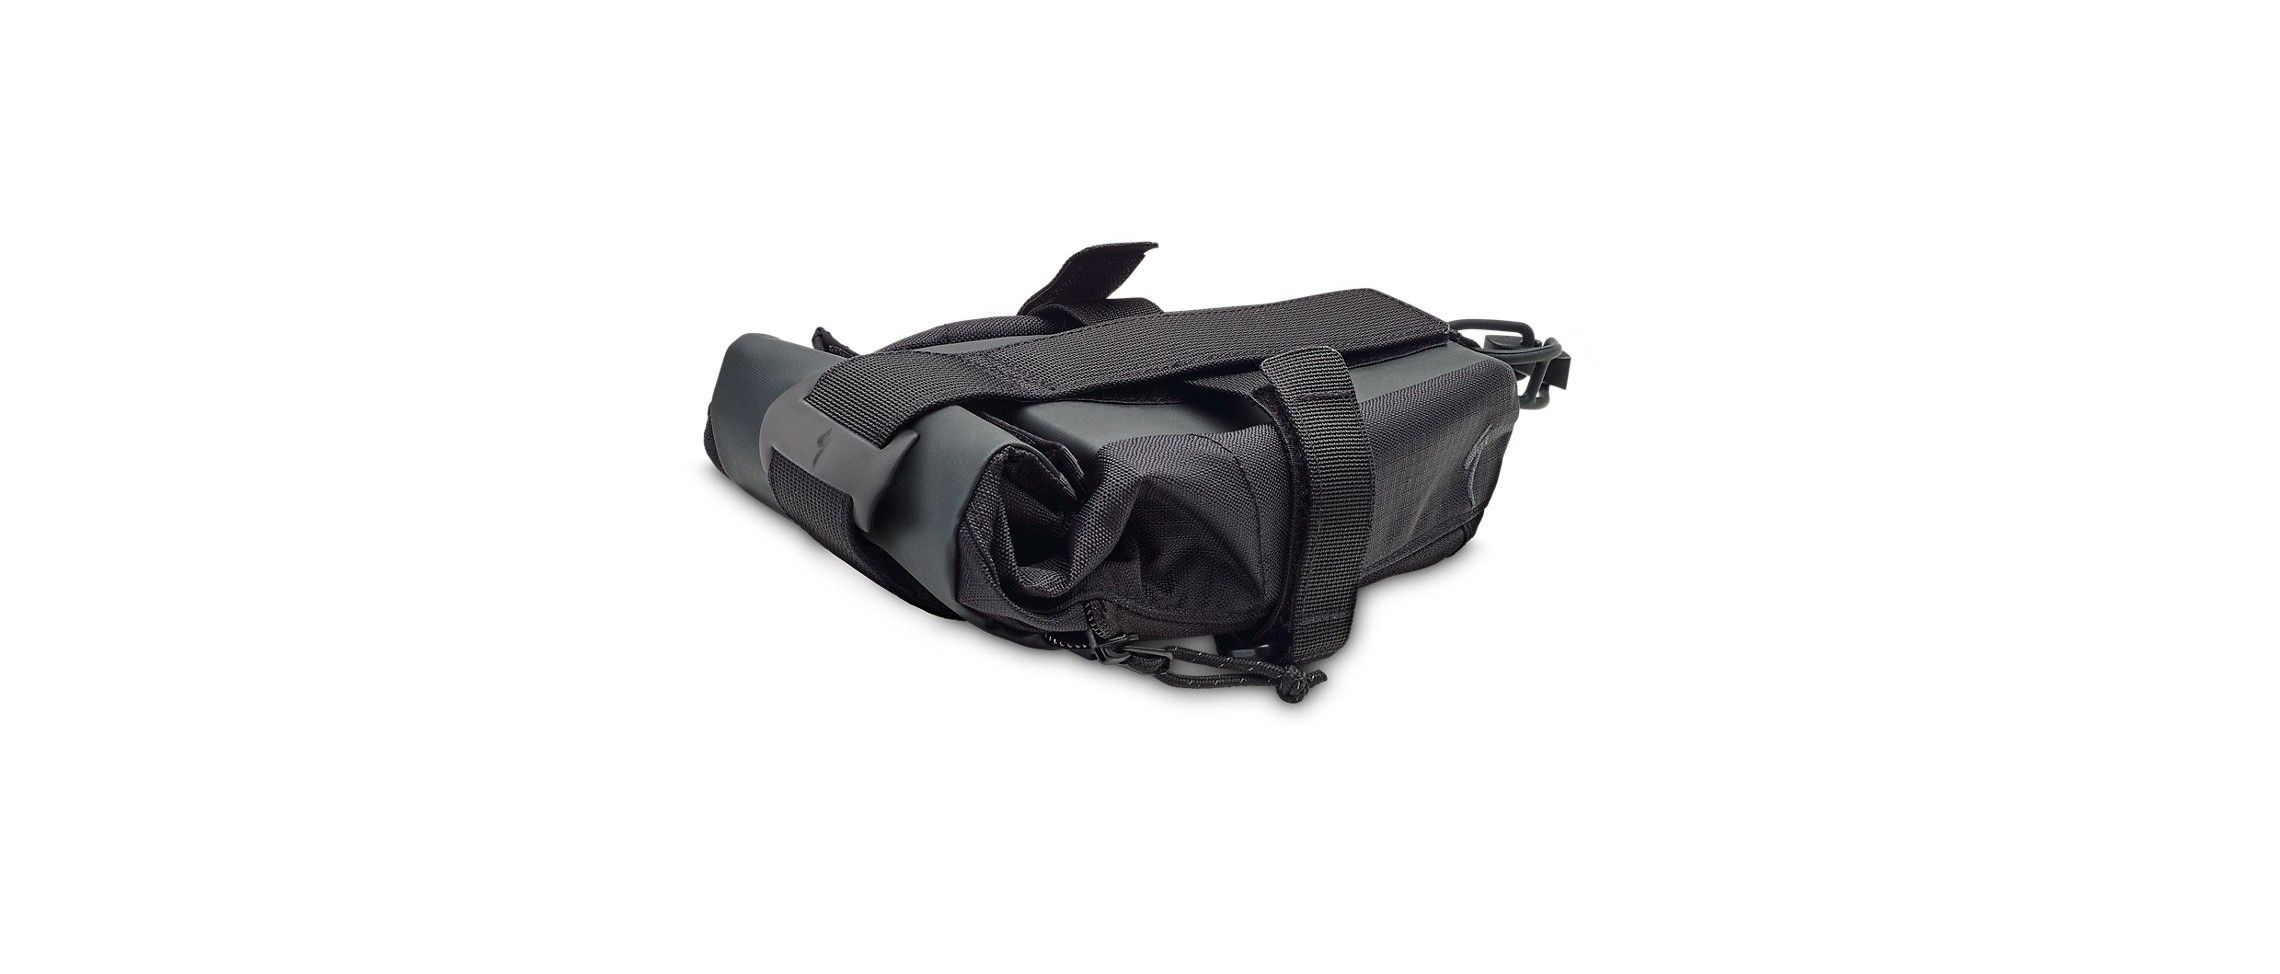 Seat Pack X-Large Portabultos Sillin Specialized Negro 1 IBKBike.es